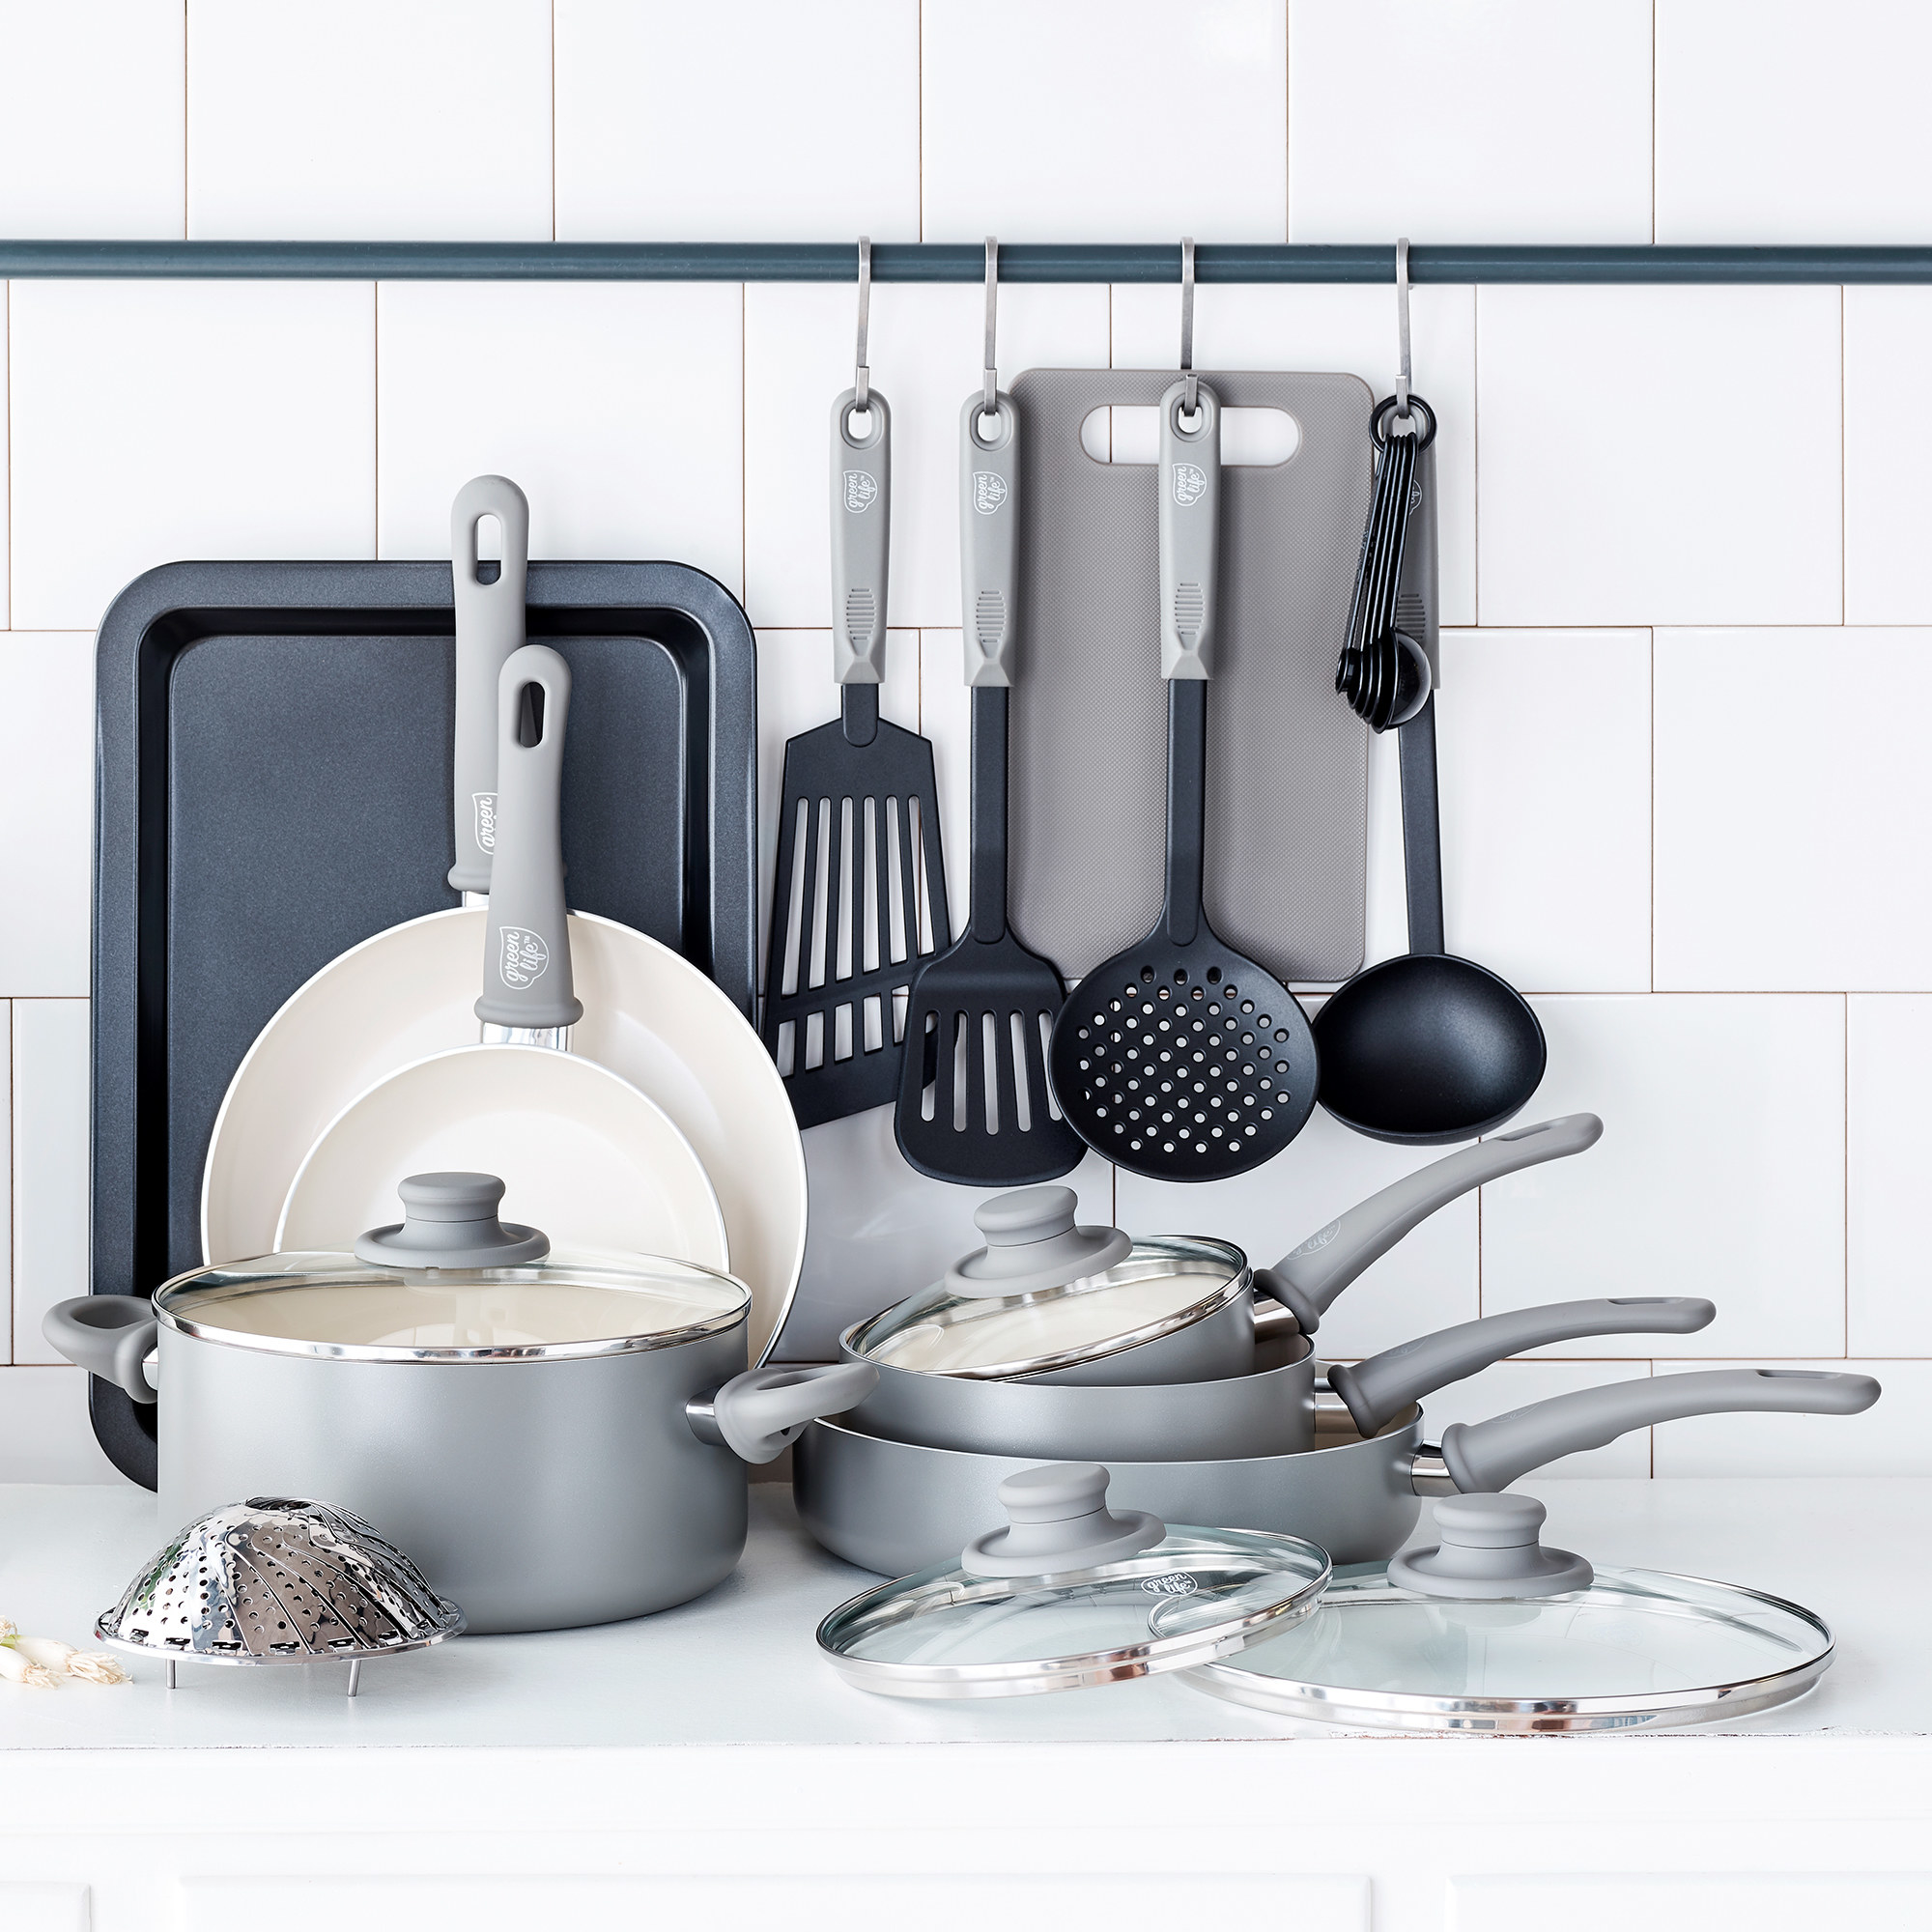 The grey cookware set and accessories